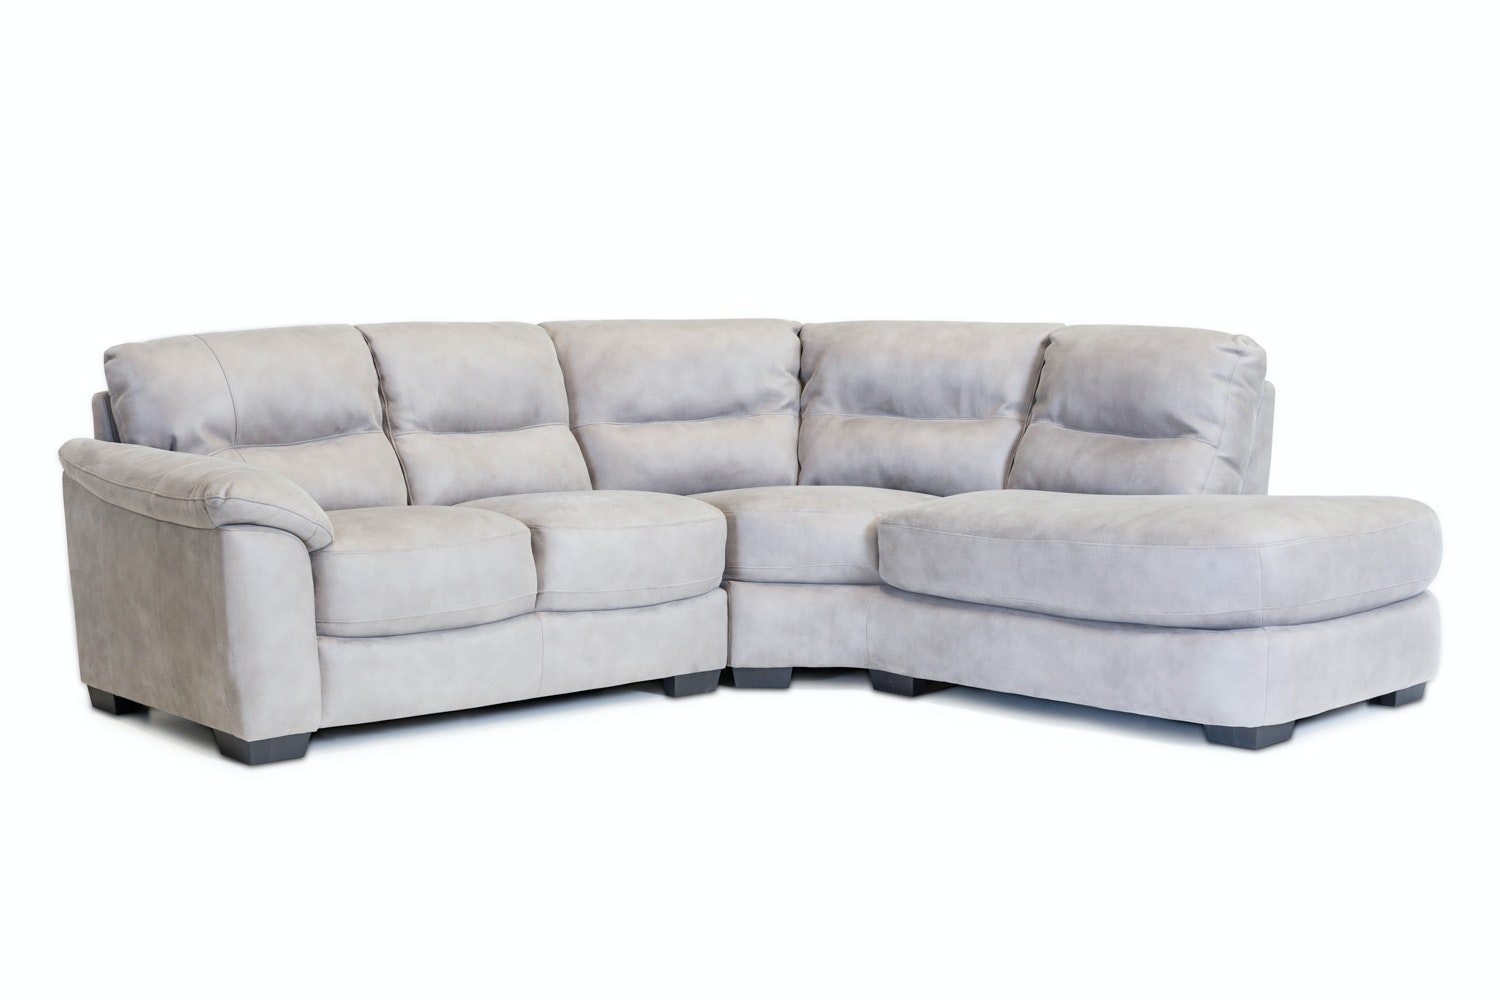 2 Seater Chaise Sofa Bed Astonishing Seater Corner Sofa Bed For Beds Chaise Details M TheSofa